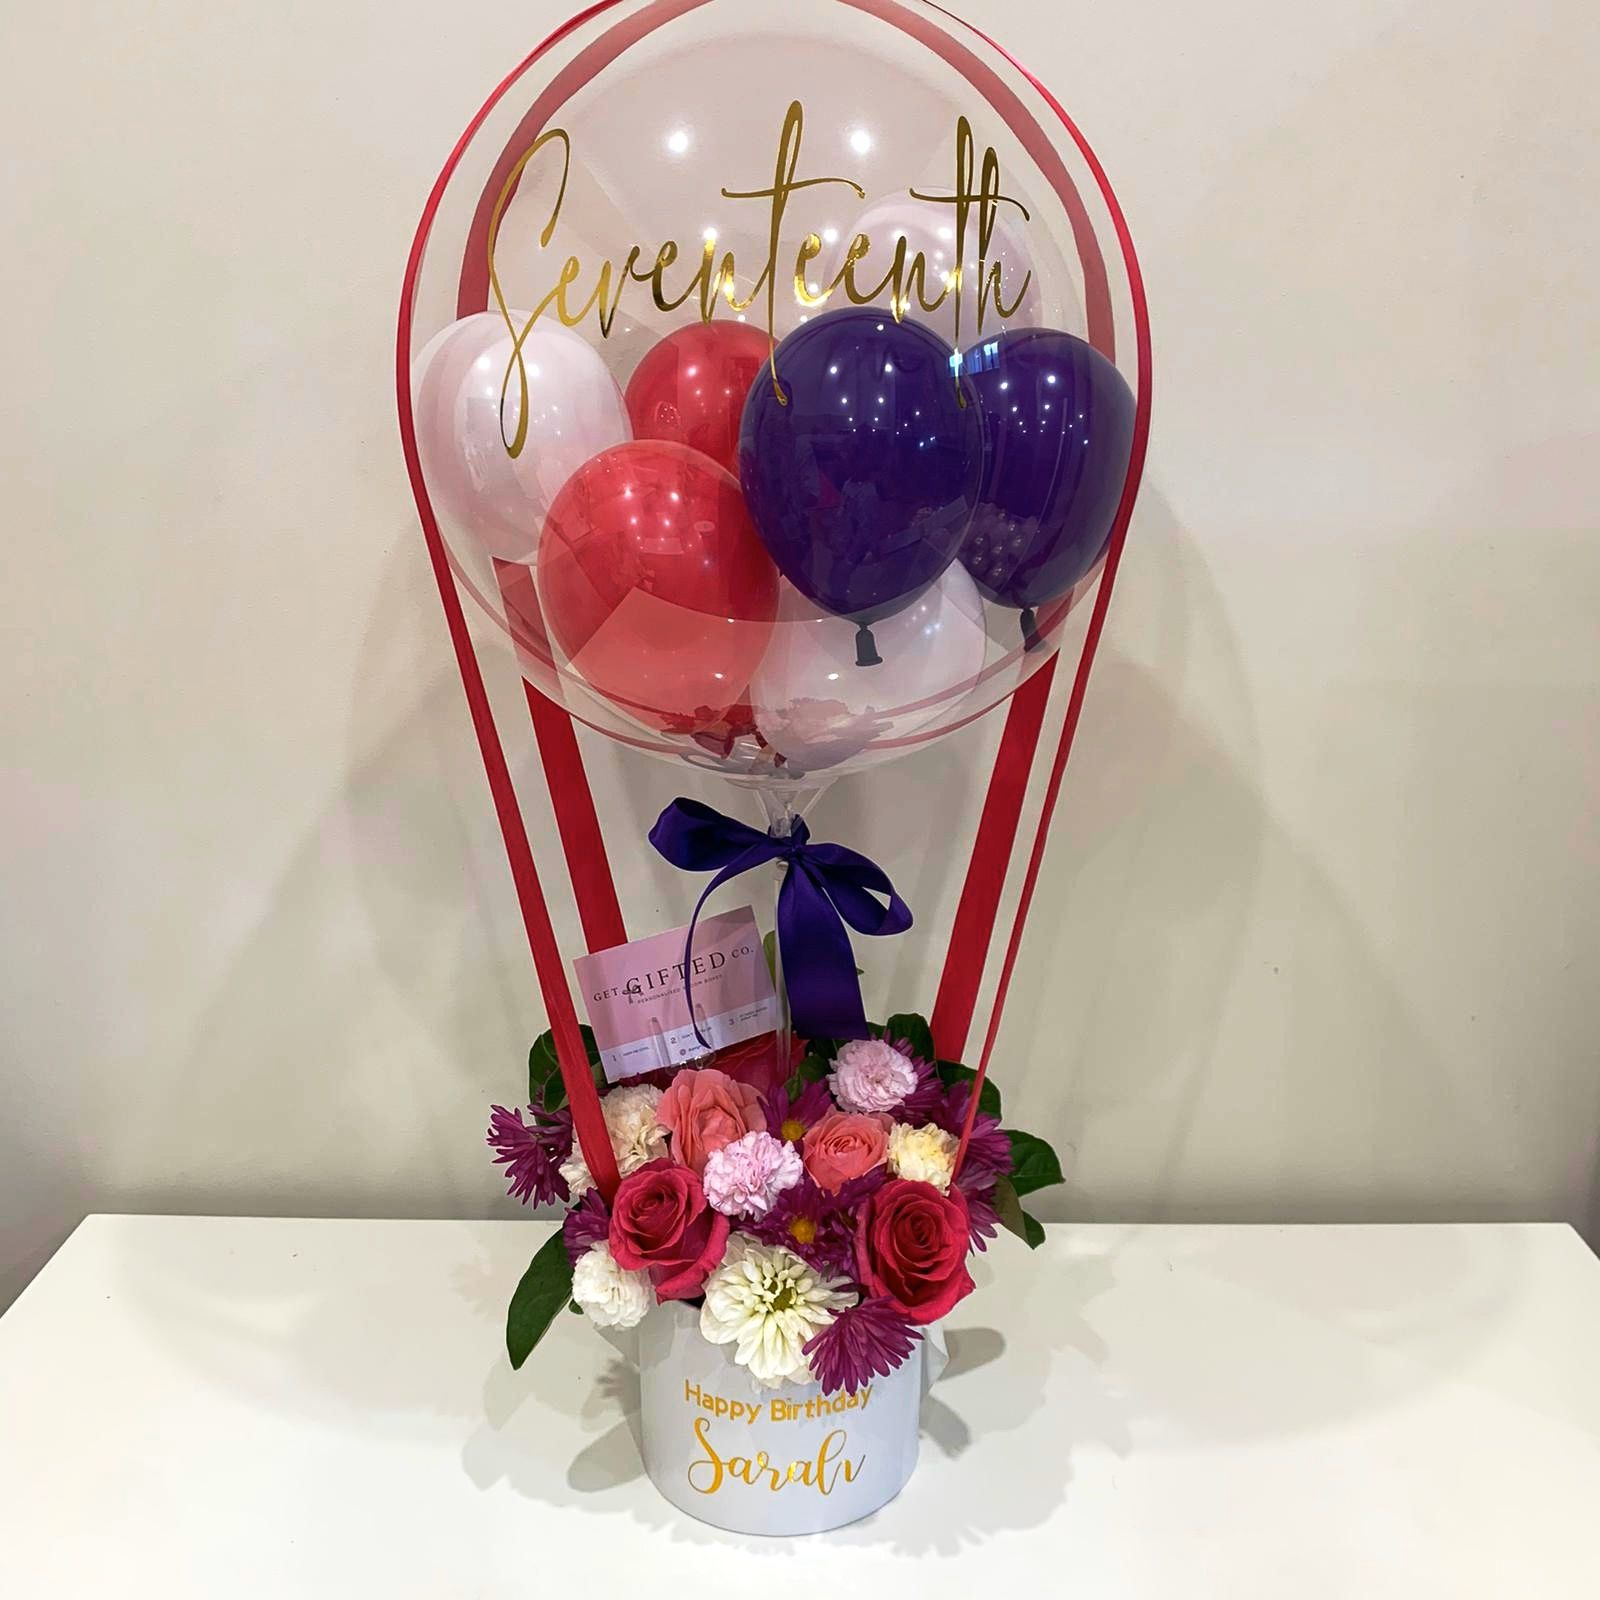 We are still crushing over this balloonbloombox for